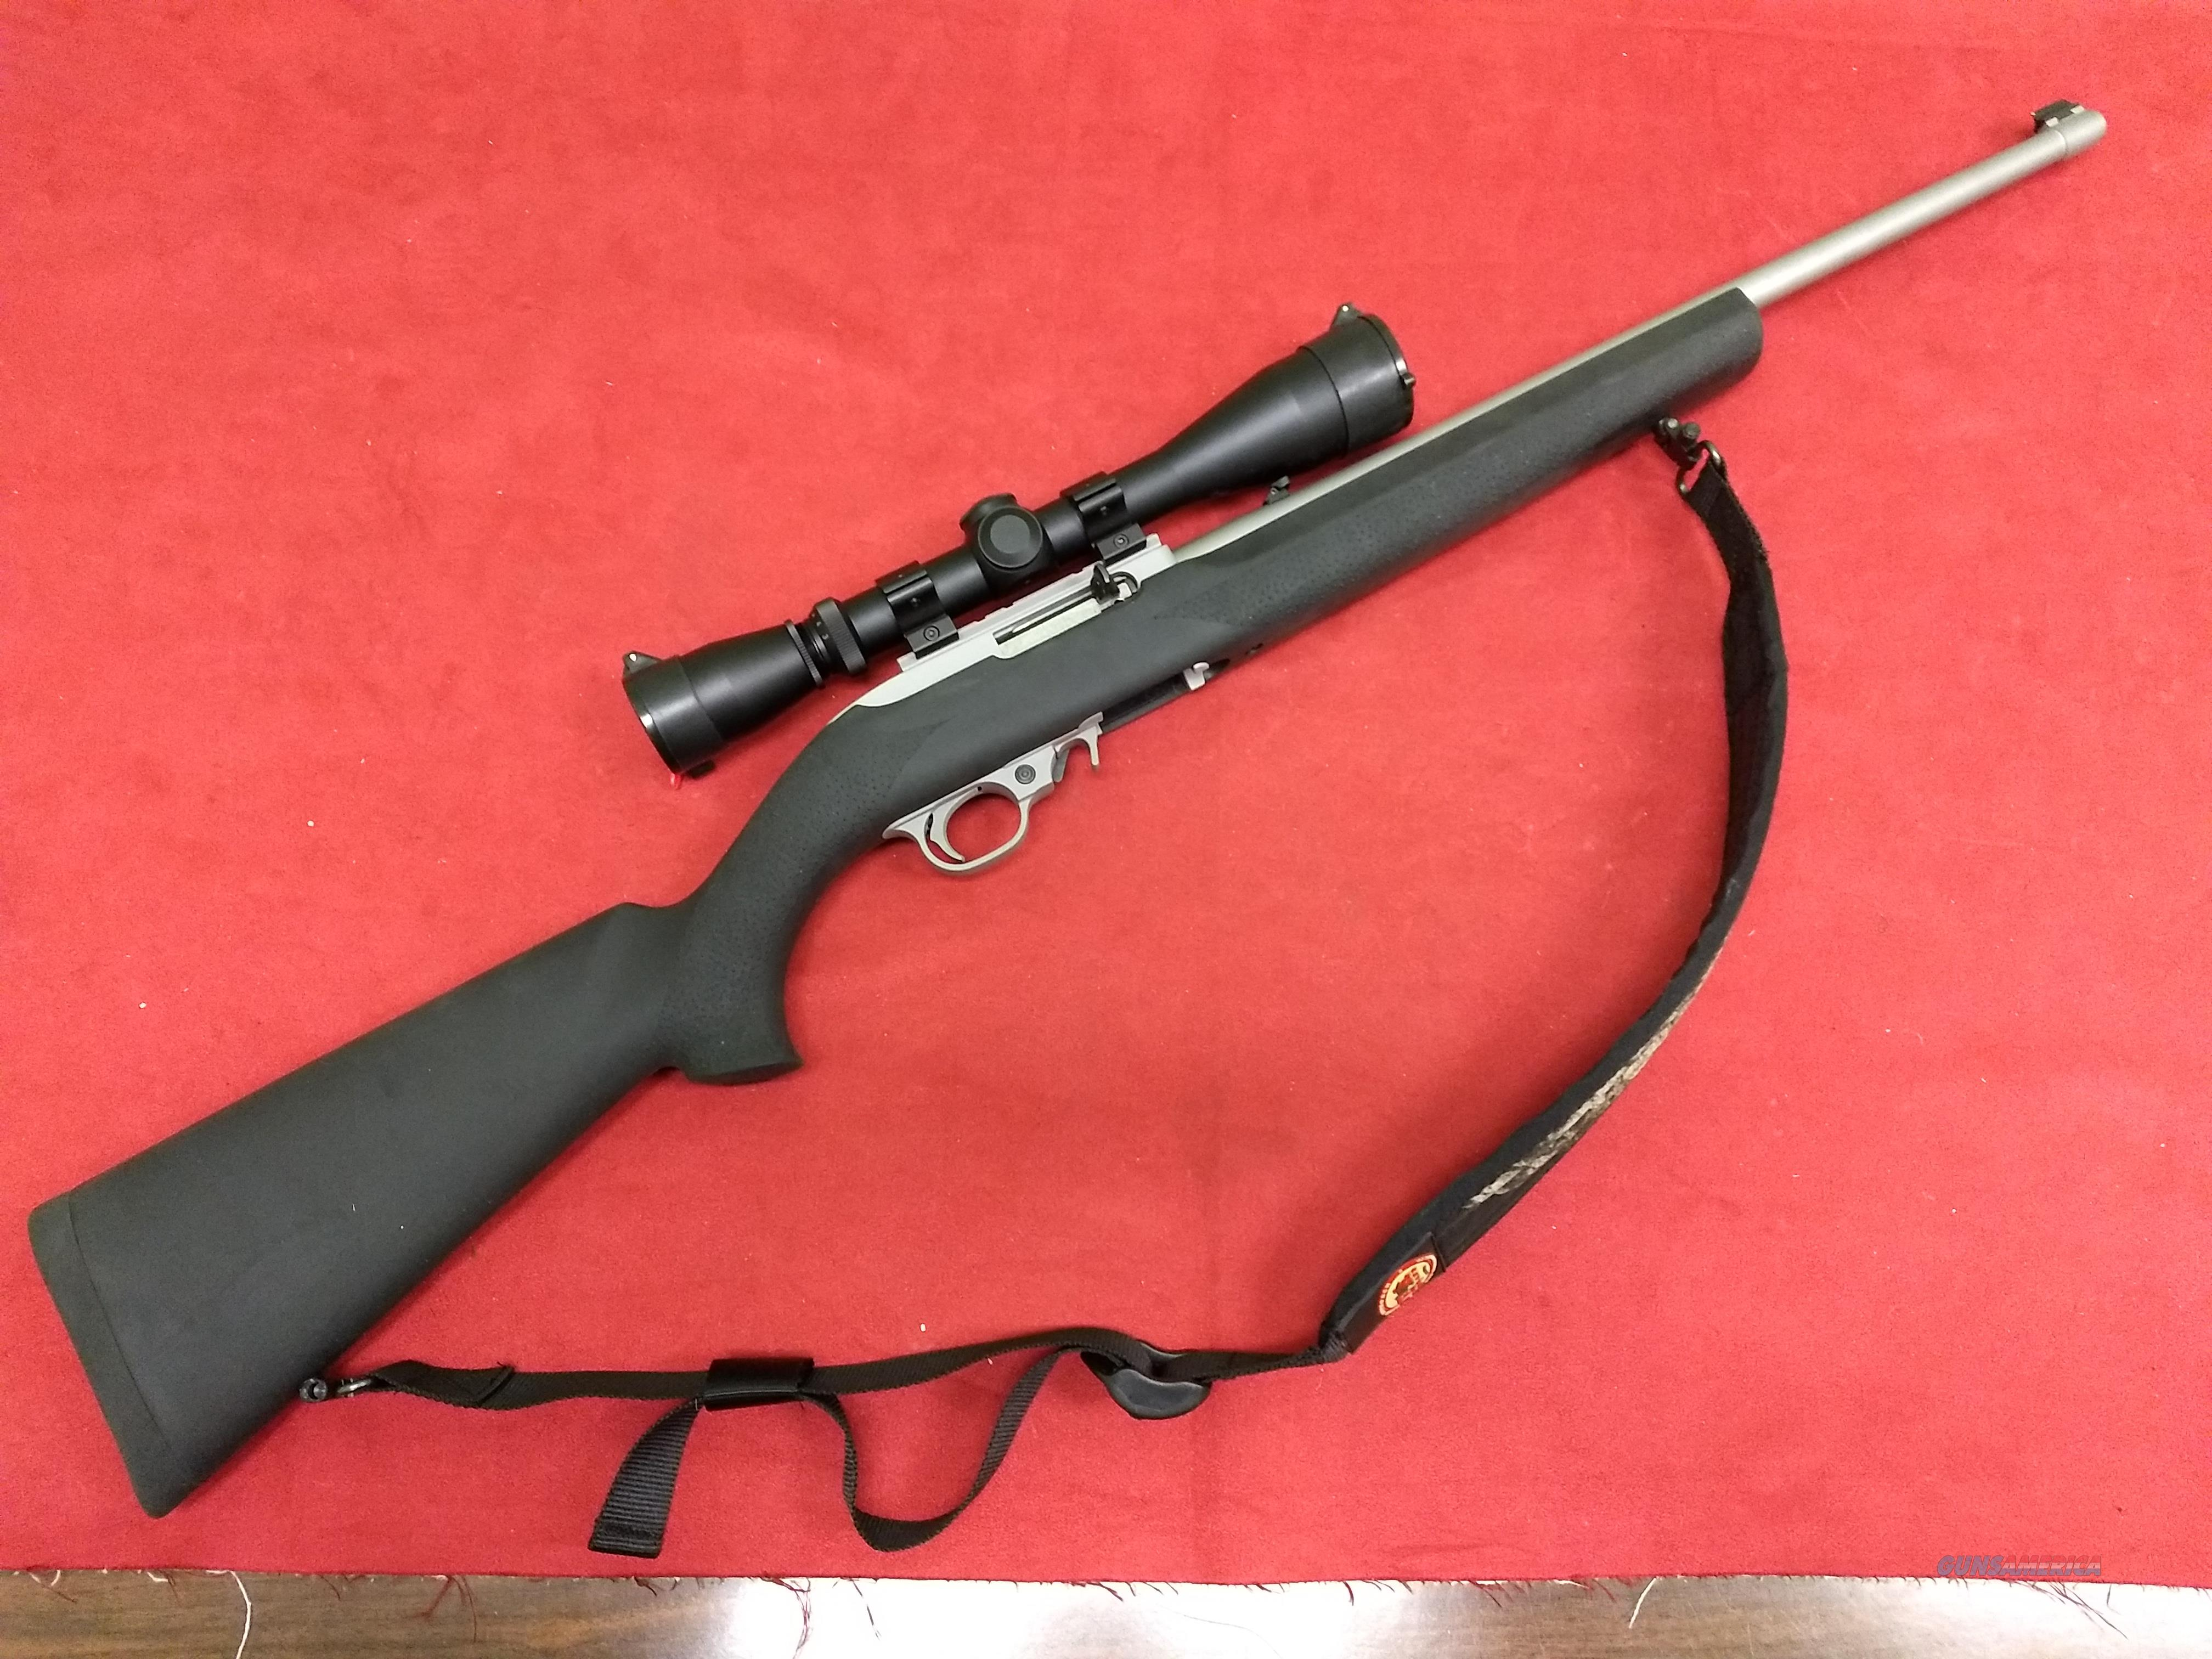 Ruger 10/22 Stainless,  22 LR, Hogue Stock, w/ Leupold Scope!